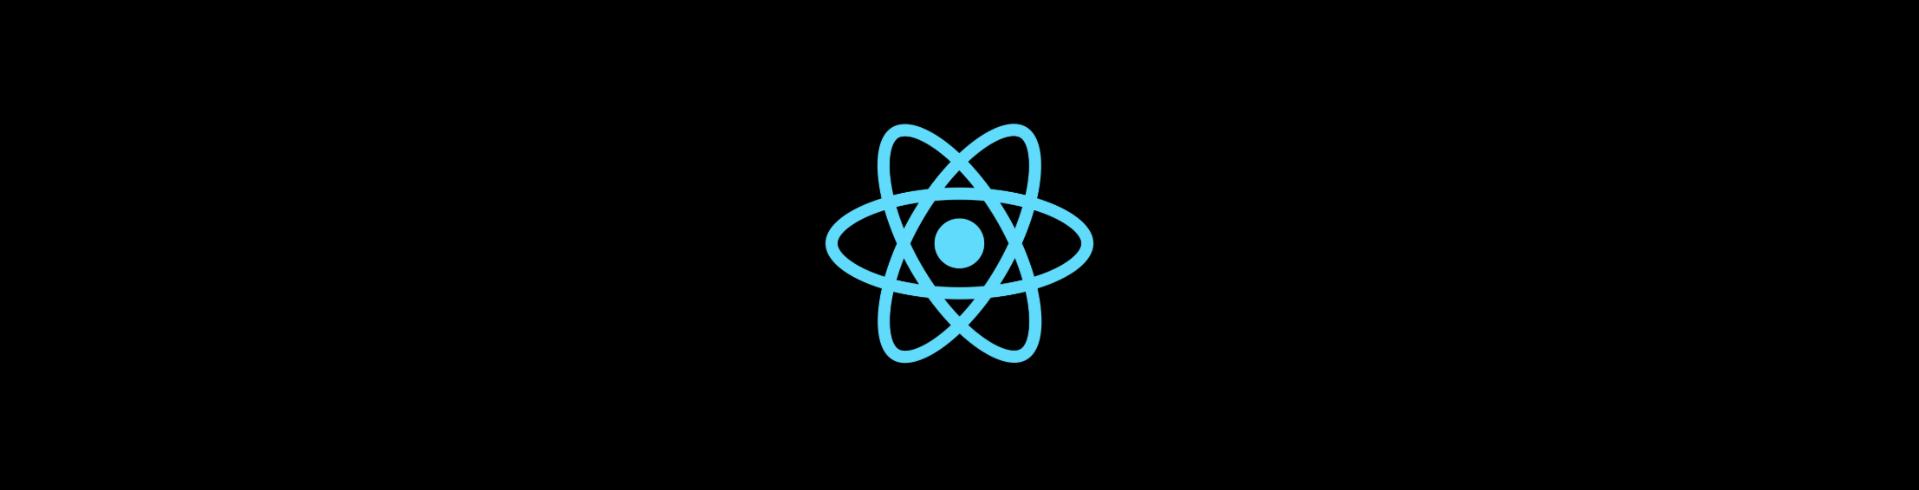 Reusable Components in React — A Practical Guide - Bits and Pieces